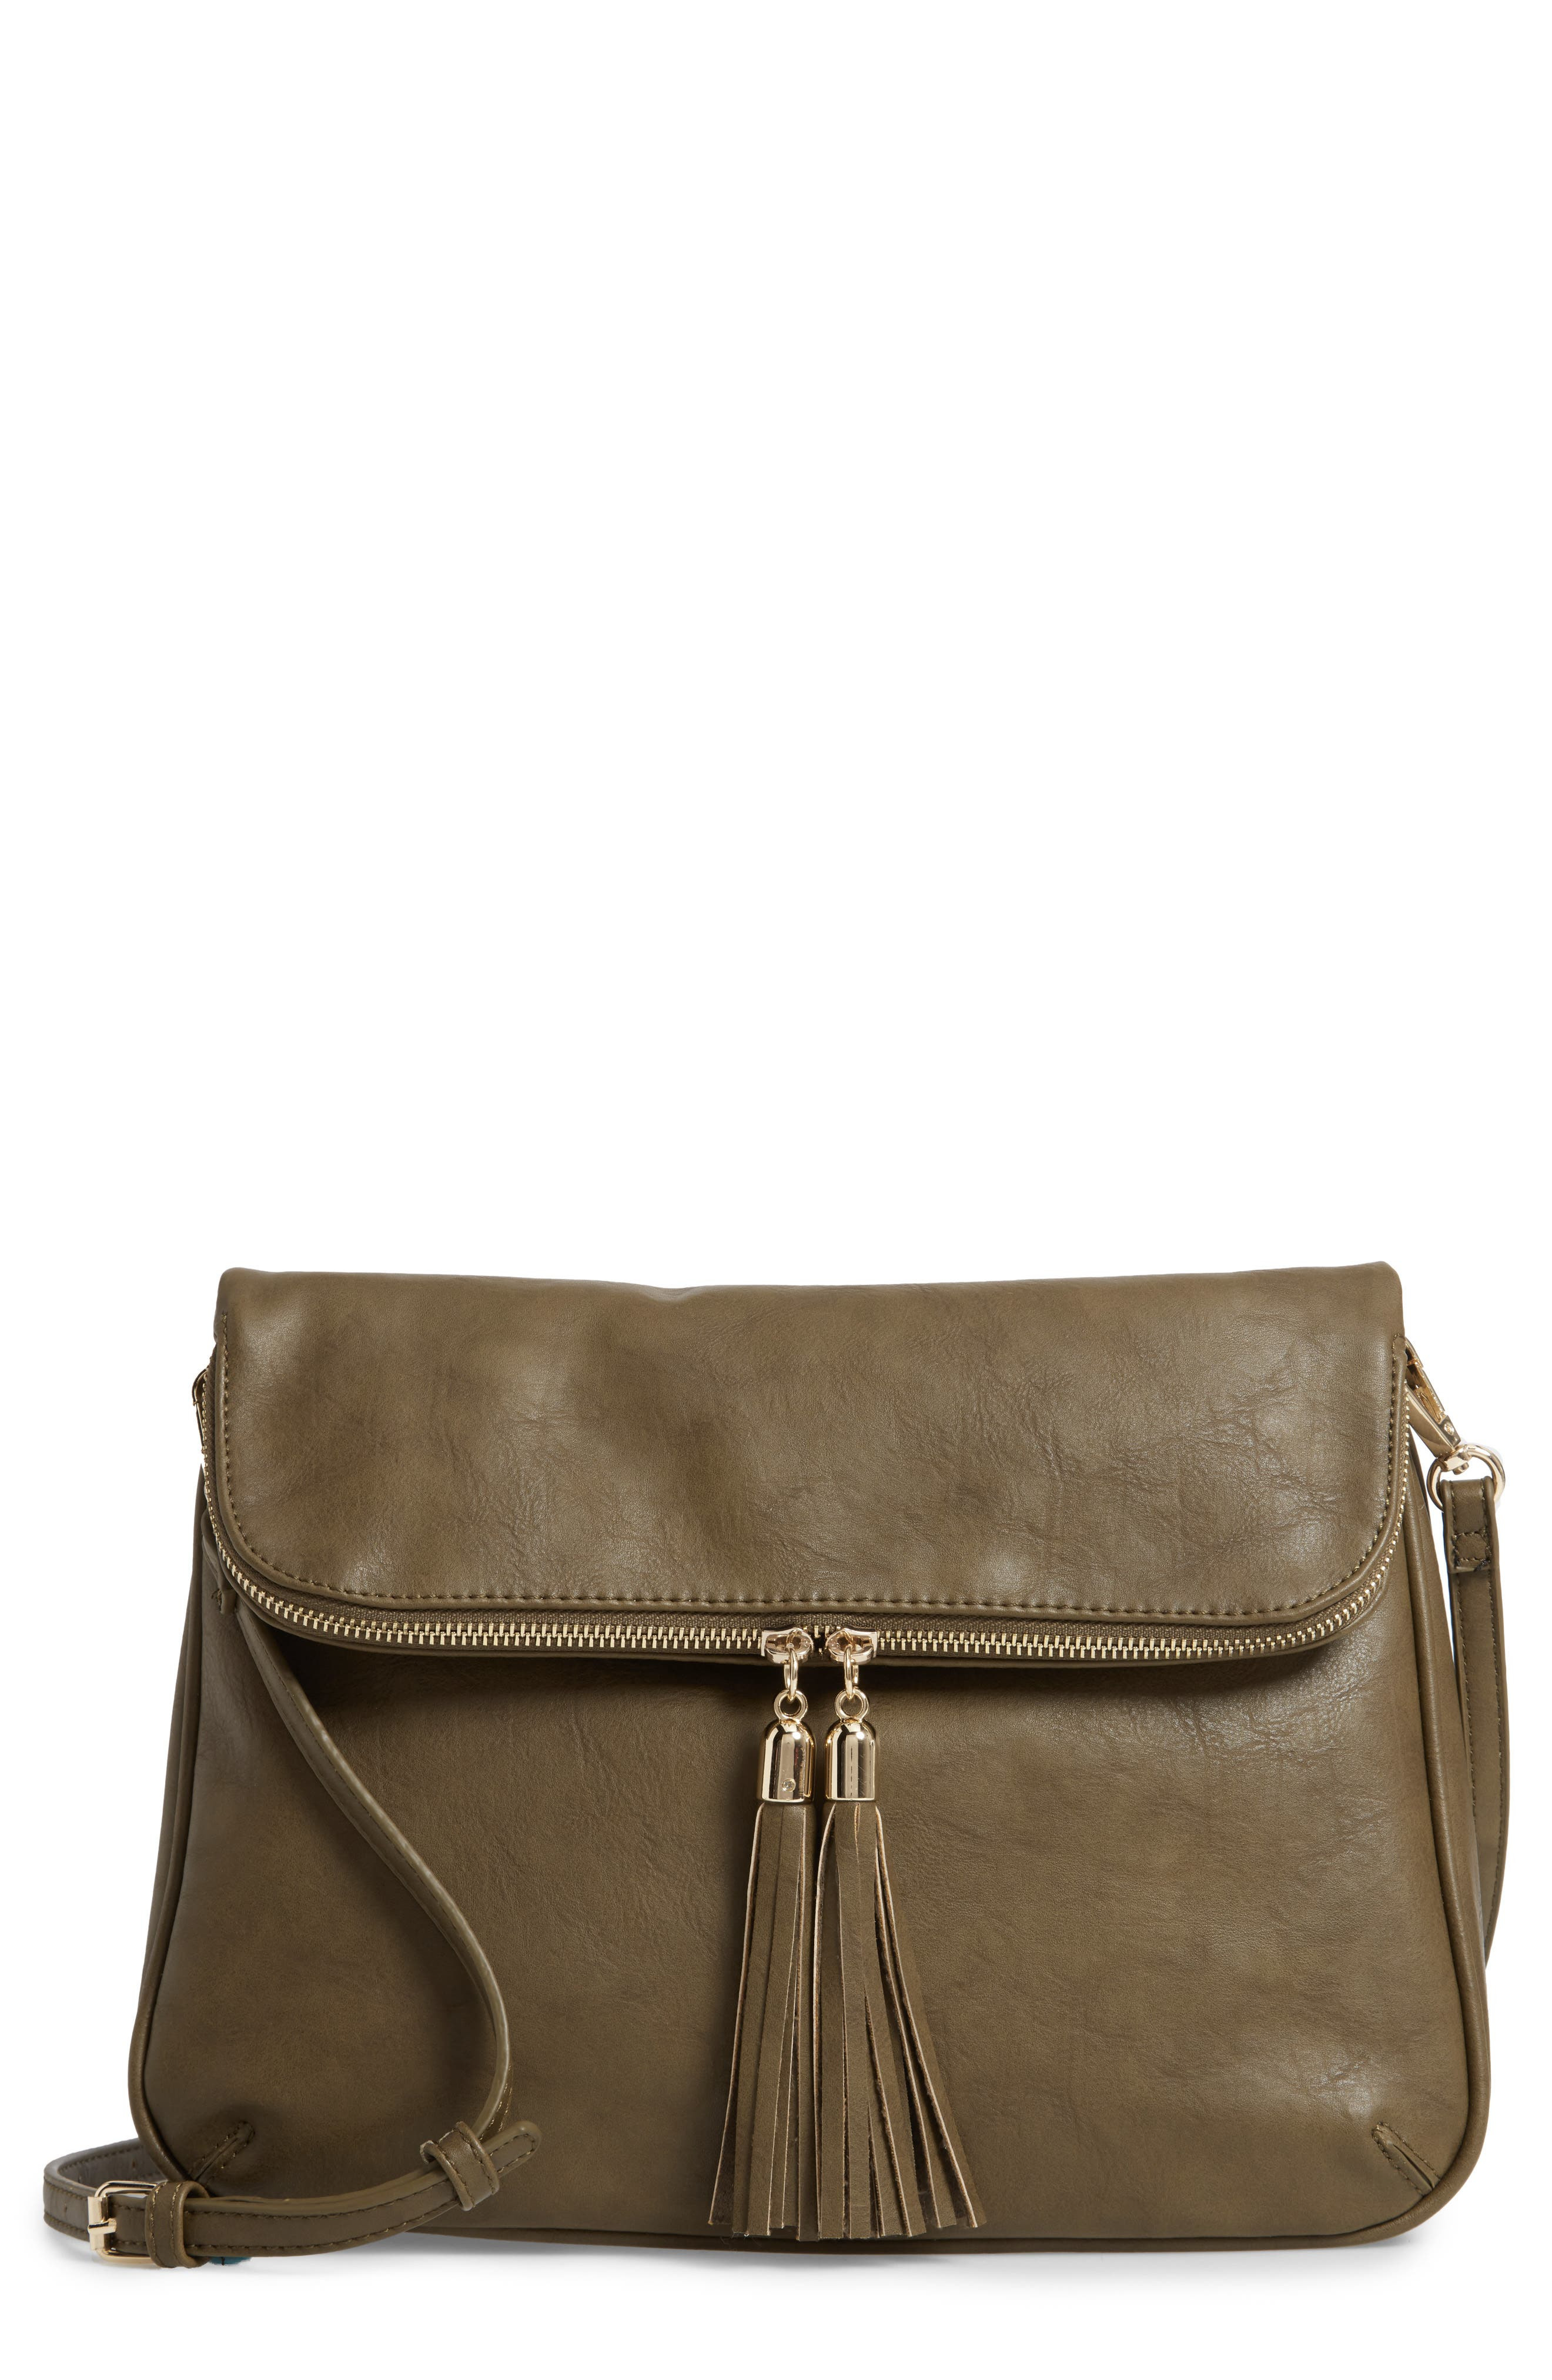 Foldover Crossbody Bag,                             Main thumbnail 1, color,                             320